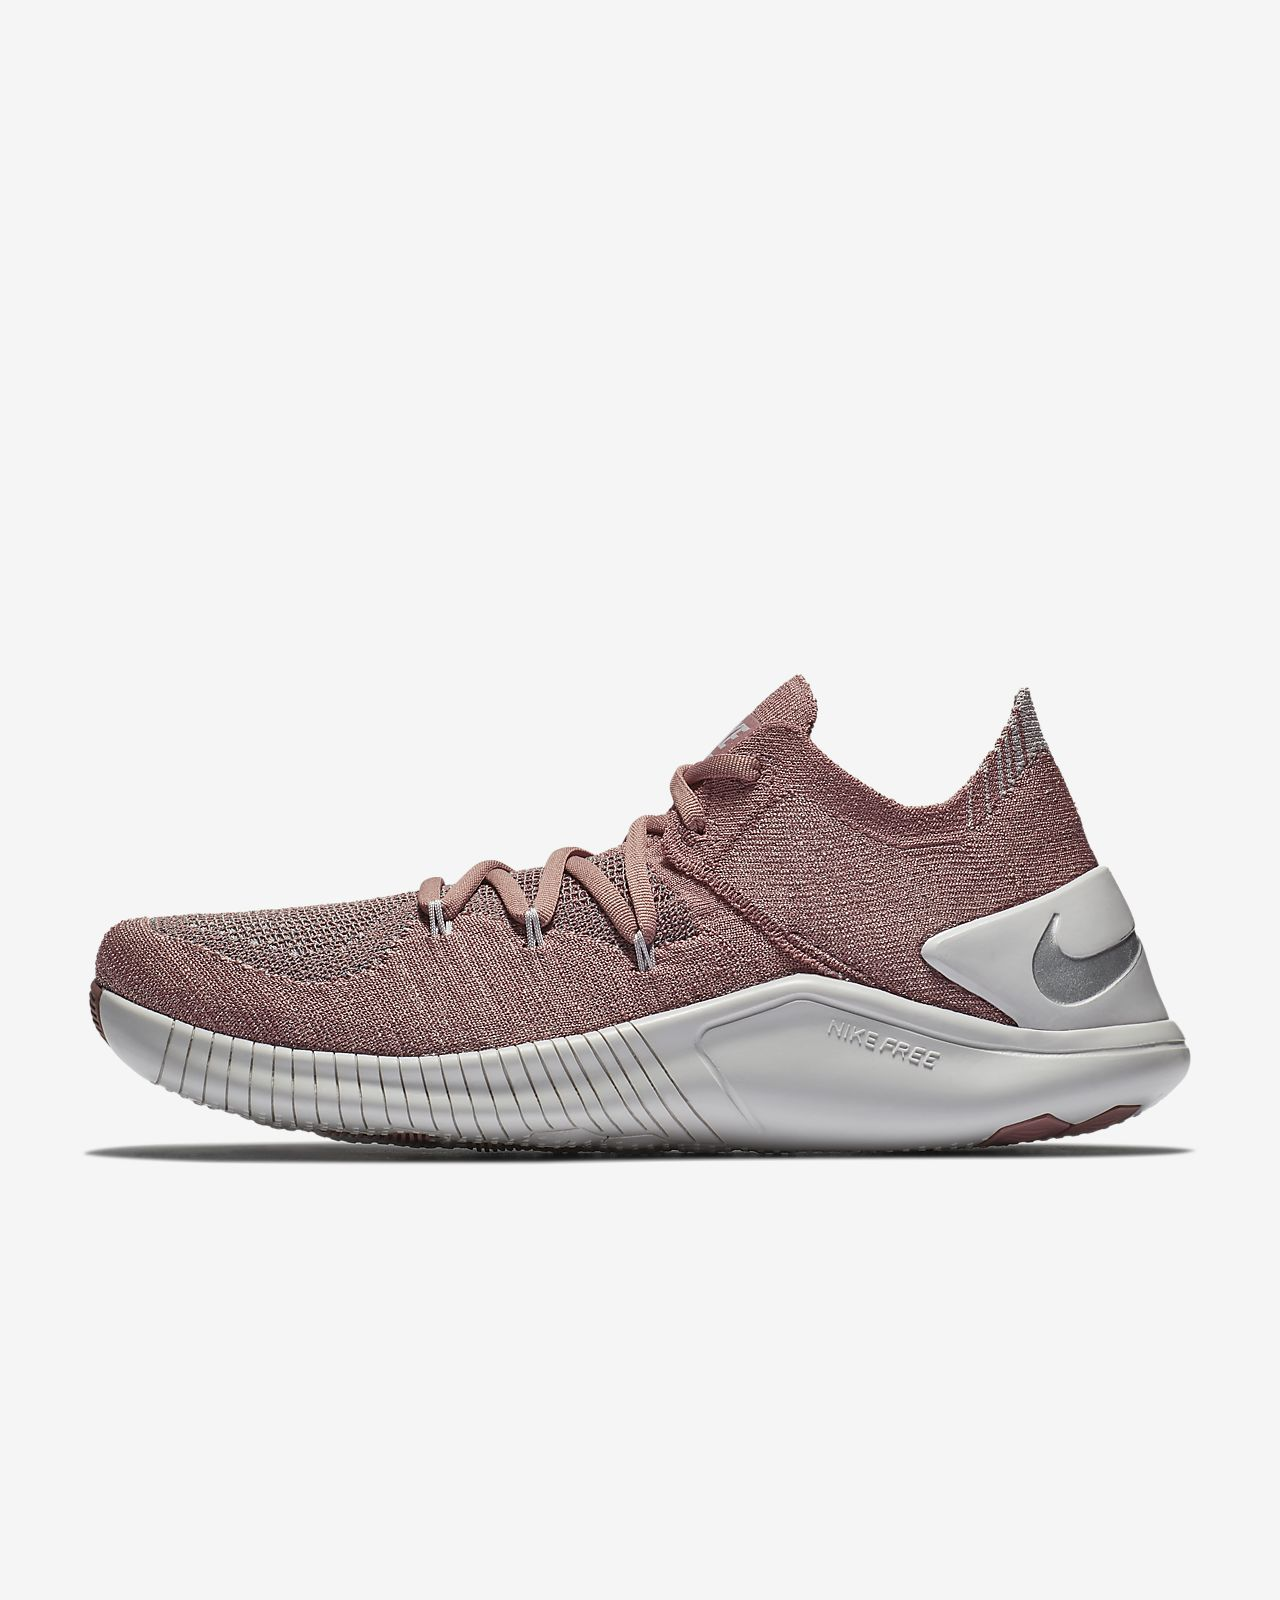 6e2865eb7a4e5 ... real nike free tr flyknit 3 lm womens gym hiit cross training shoe  0bc4f 69011